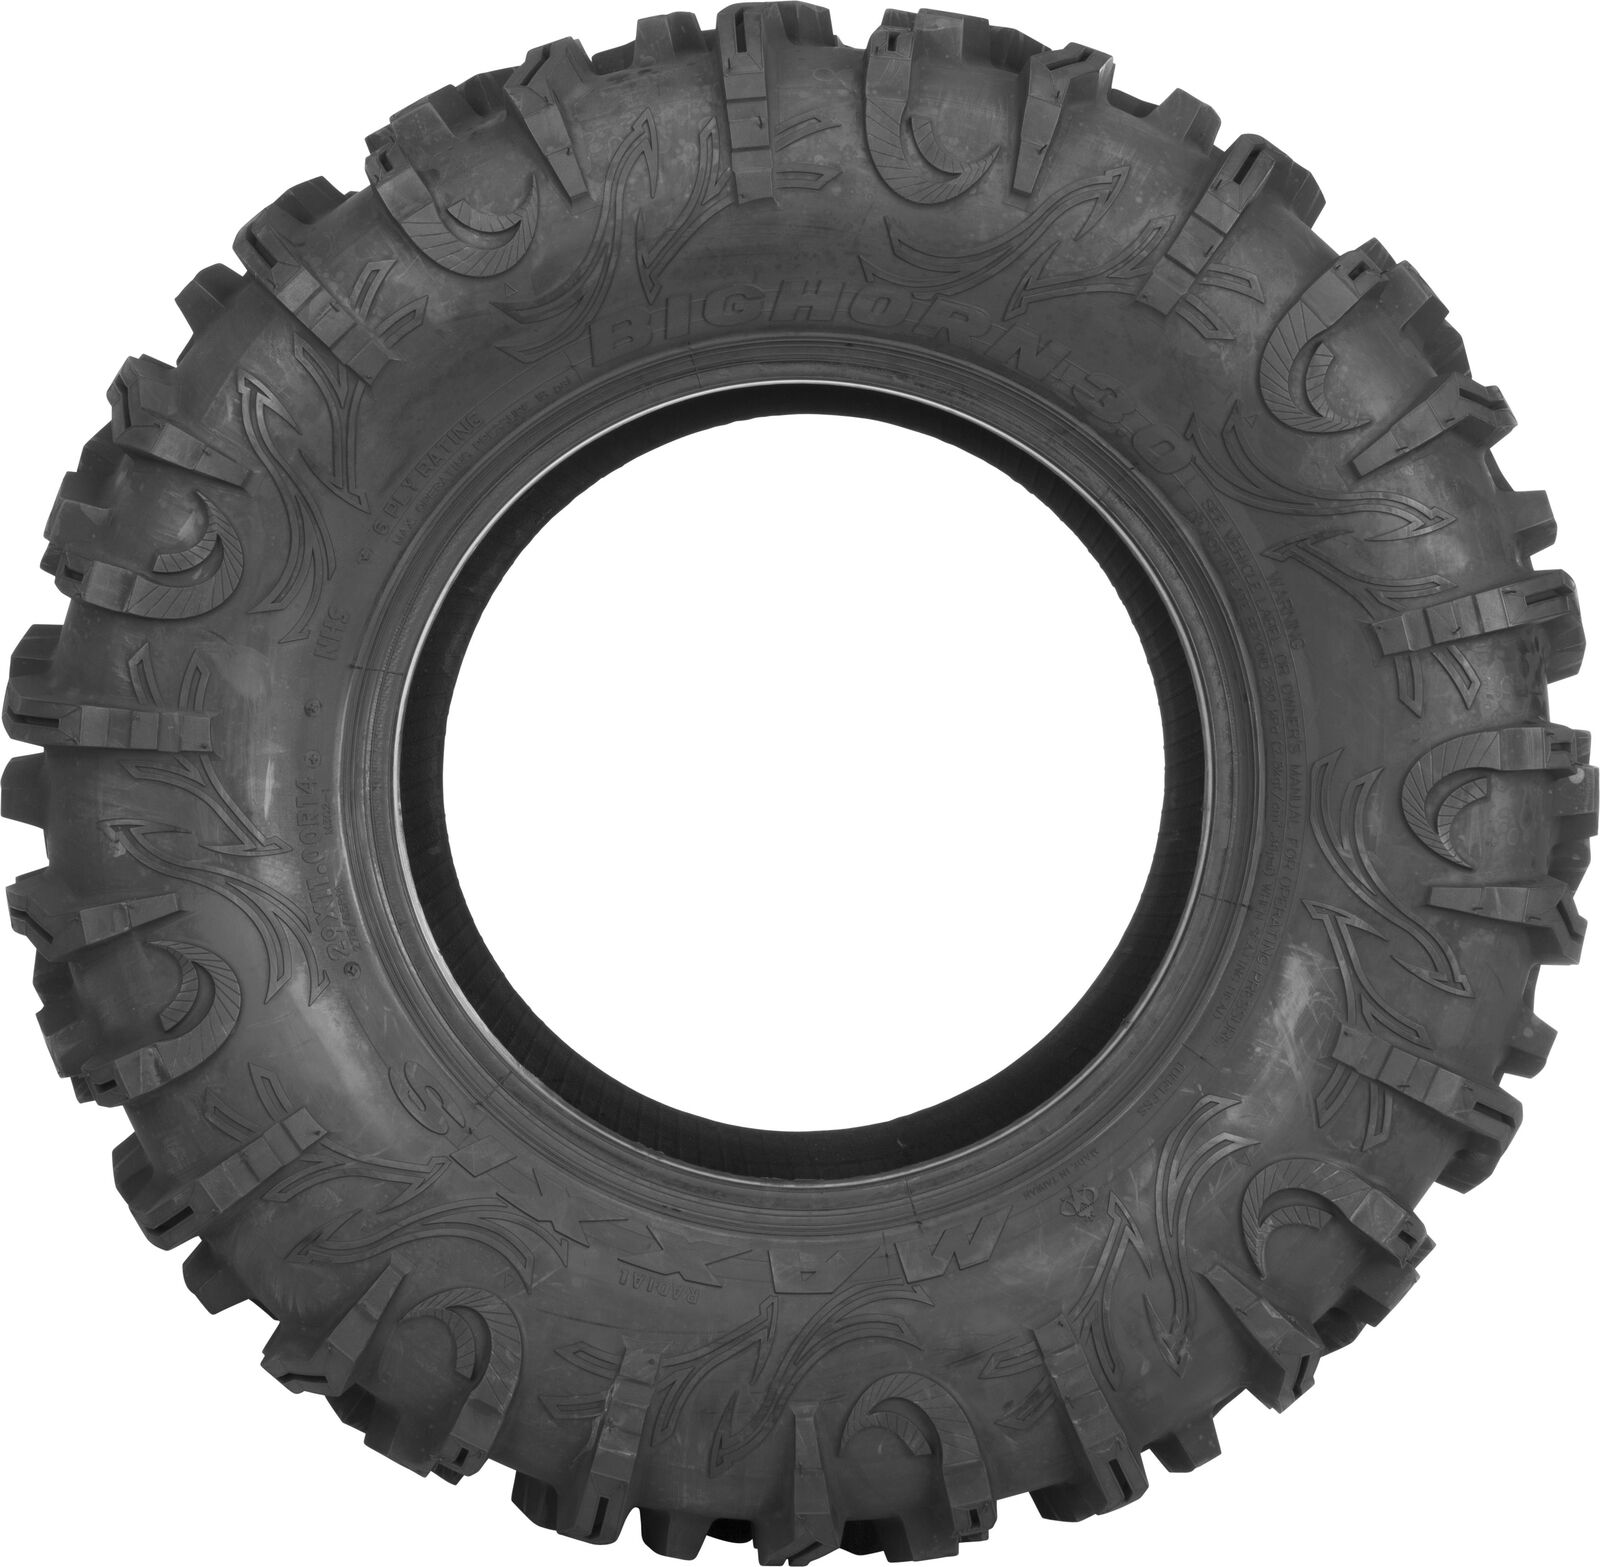 MAXXIS BIG HRN 3  26X9R-14 6PR TM01050100  first time reply